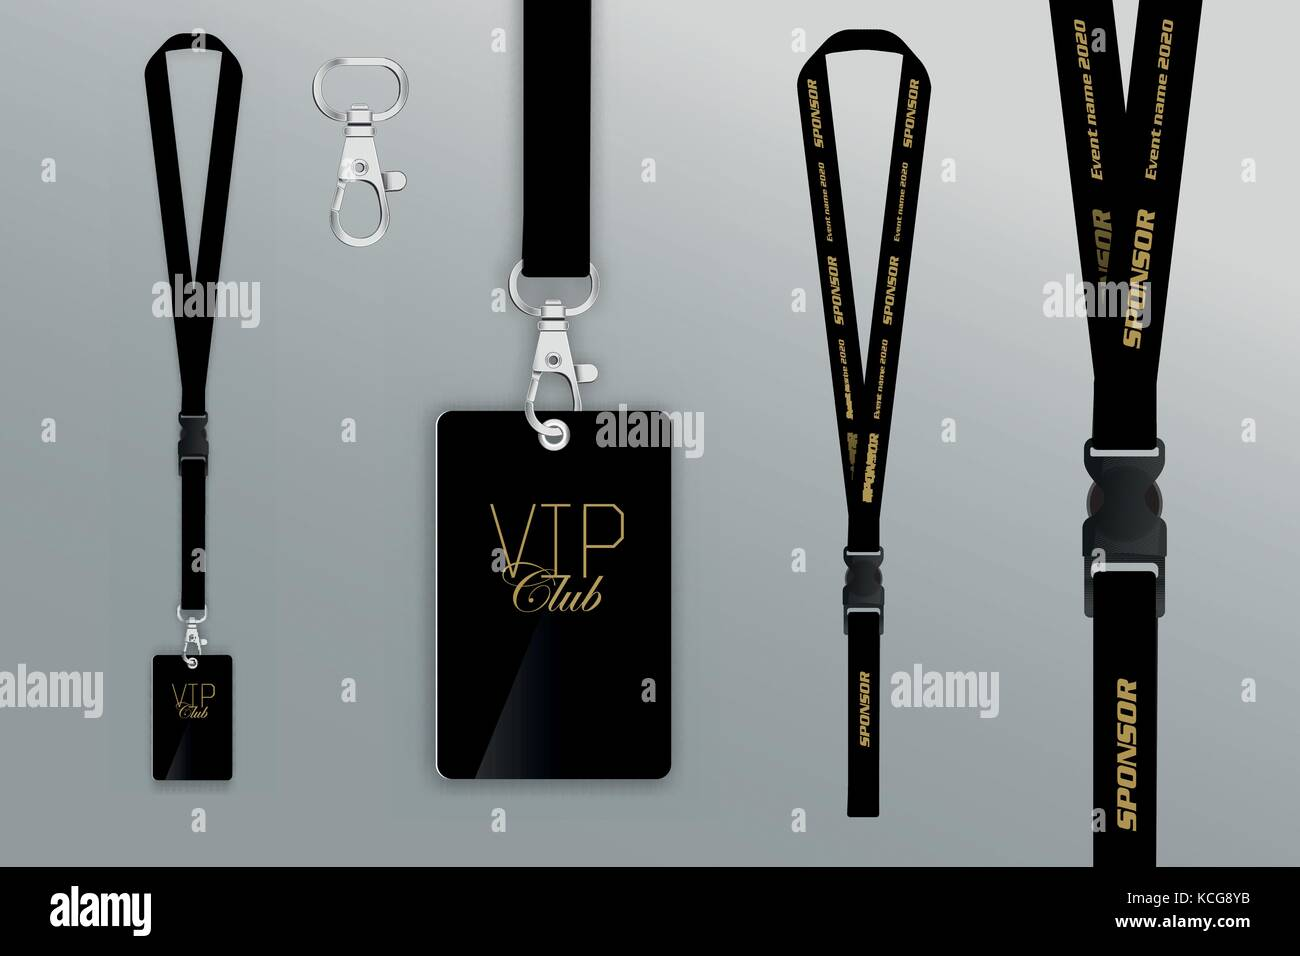 name badge and lanyard stock photos name badge and lanyard stock images alamy. Black Bedroom Furniture Sets. Home Design Ideas